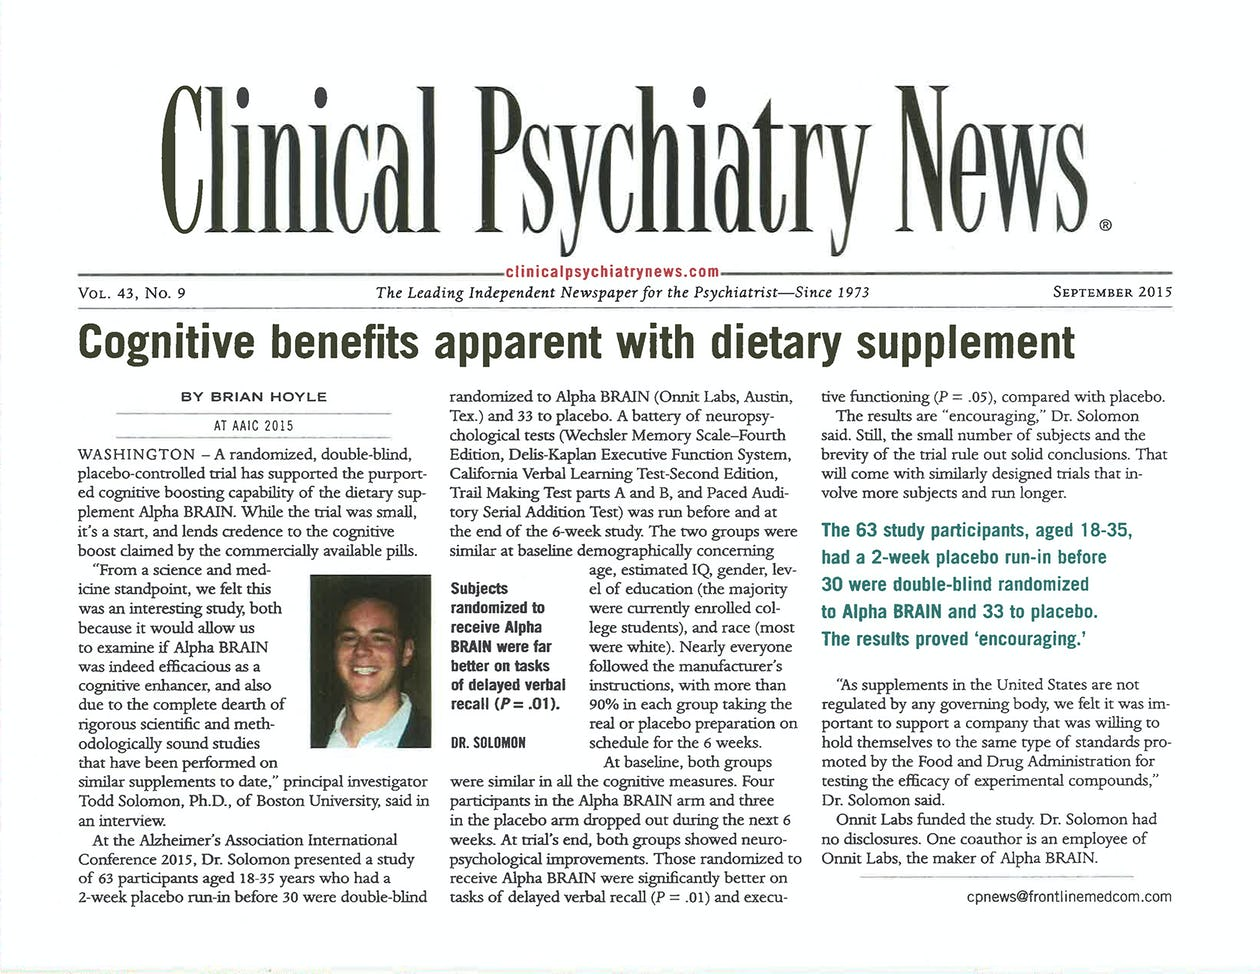 Study Links Dietary Supplement To Brain >> Clinical Psychiatry News Links Alpha Brain To Cognitive Benefits